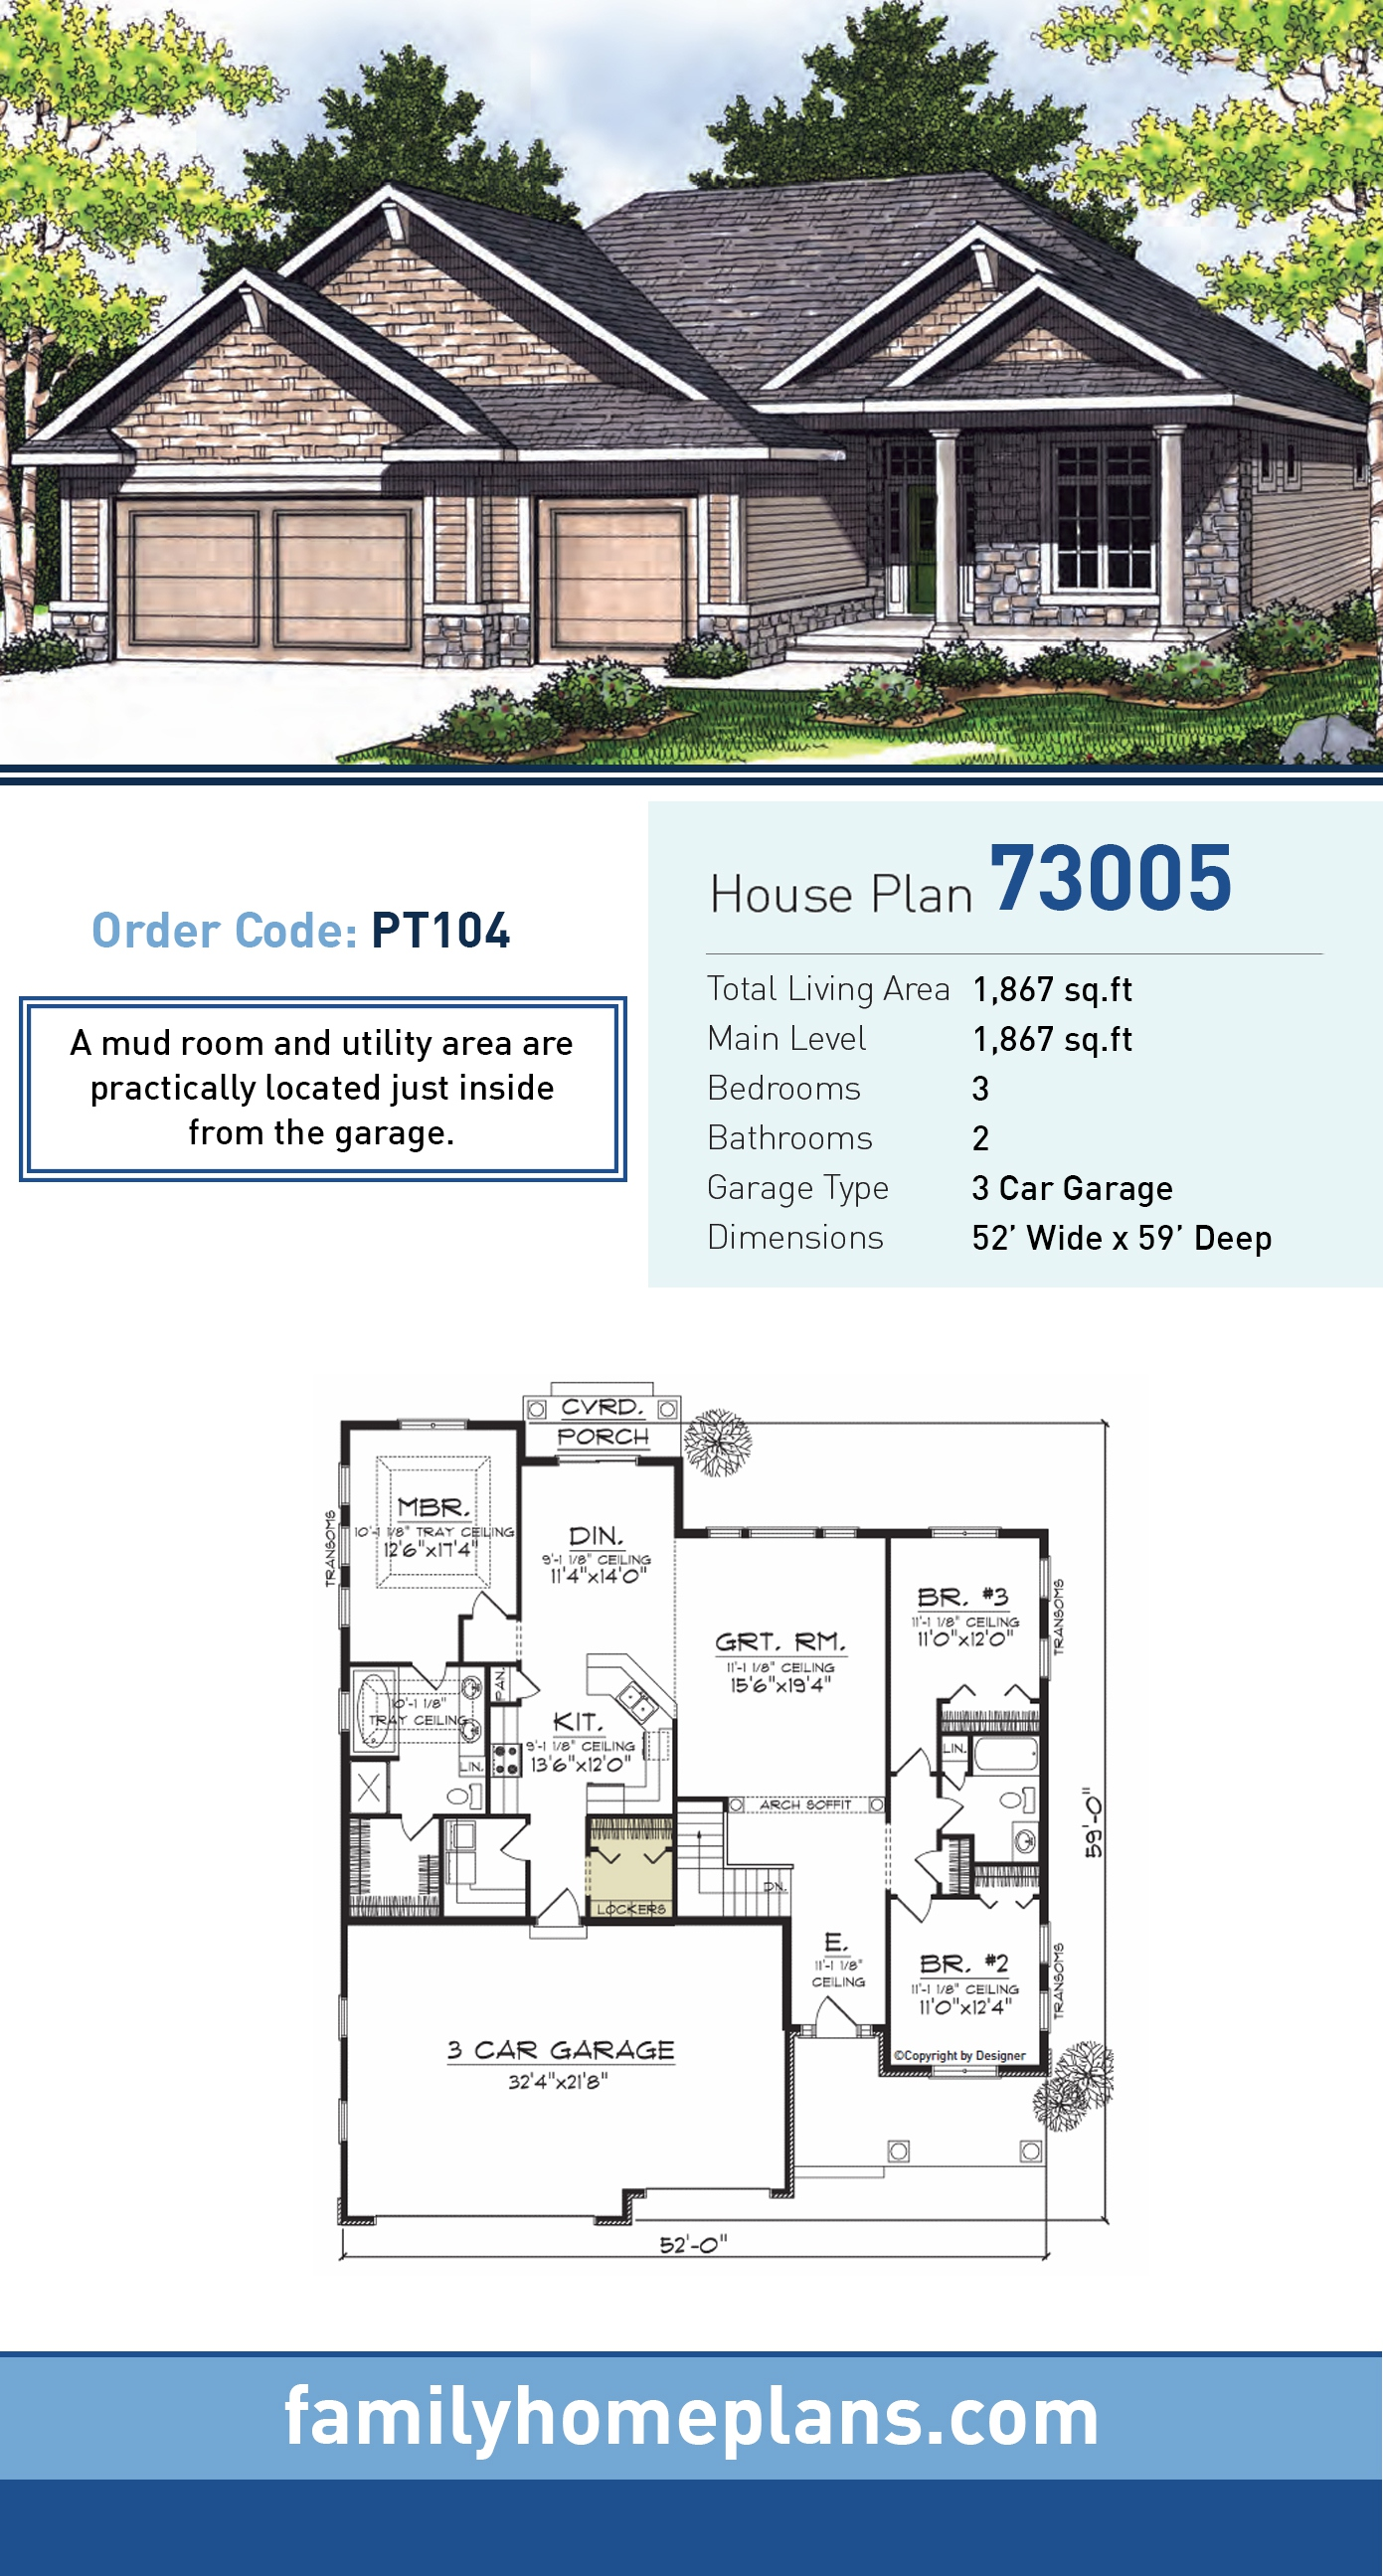 Bungalow House Plan 73005 with 3 Beds, 2 Baths, 3 Car Garage